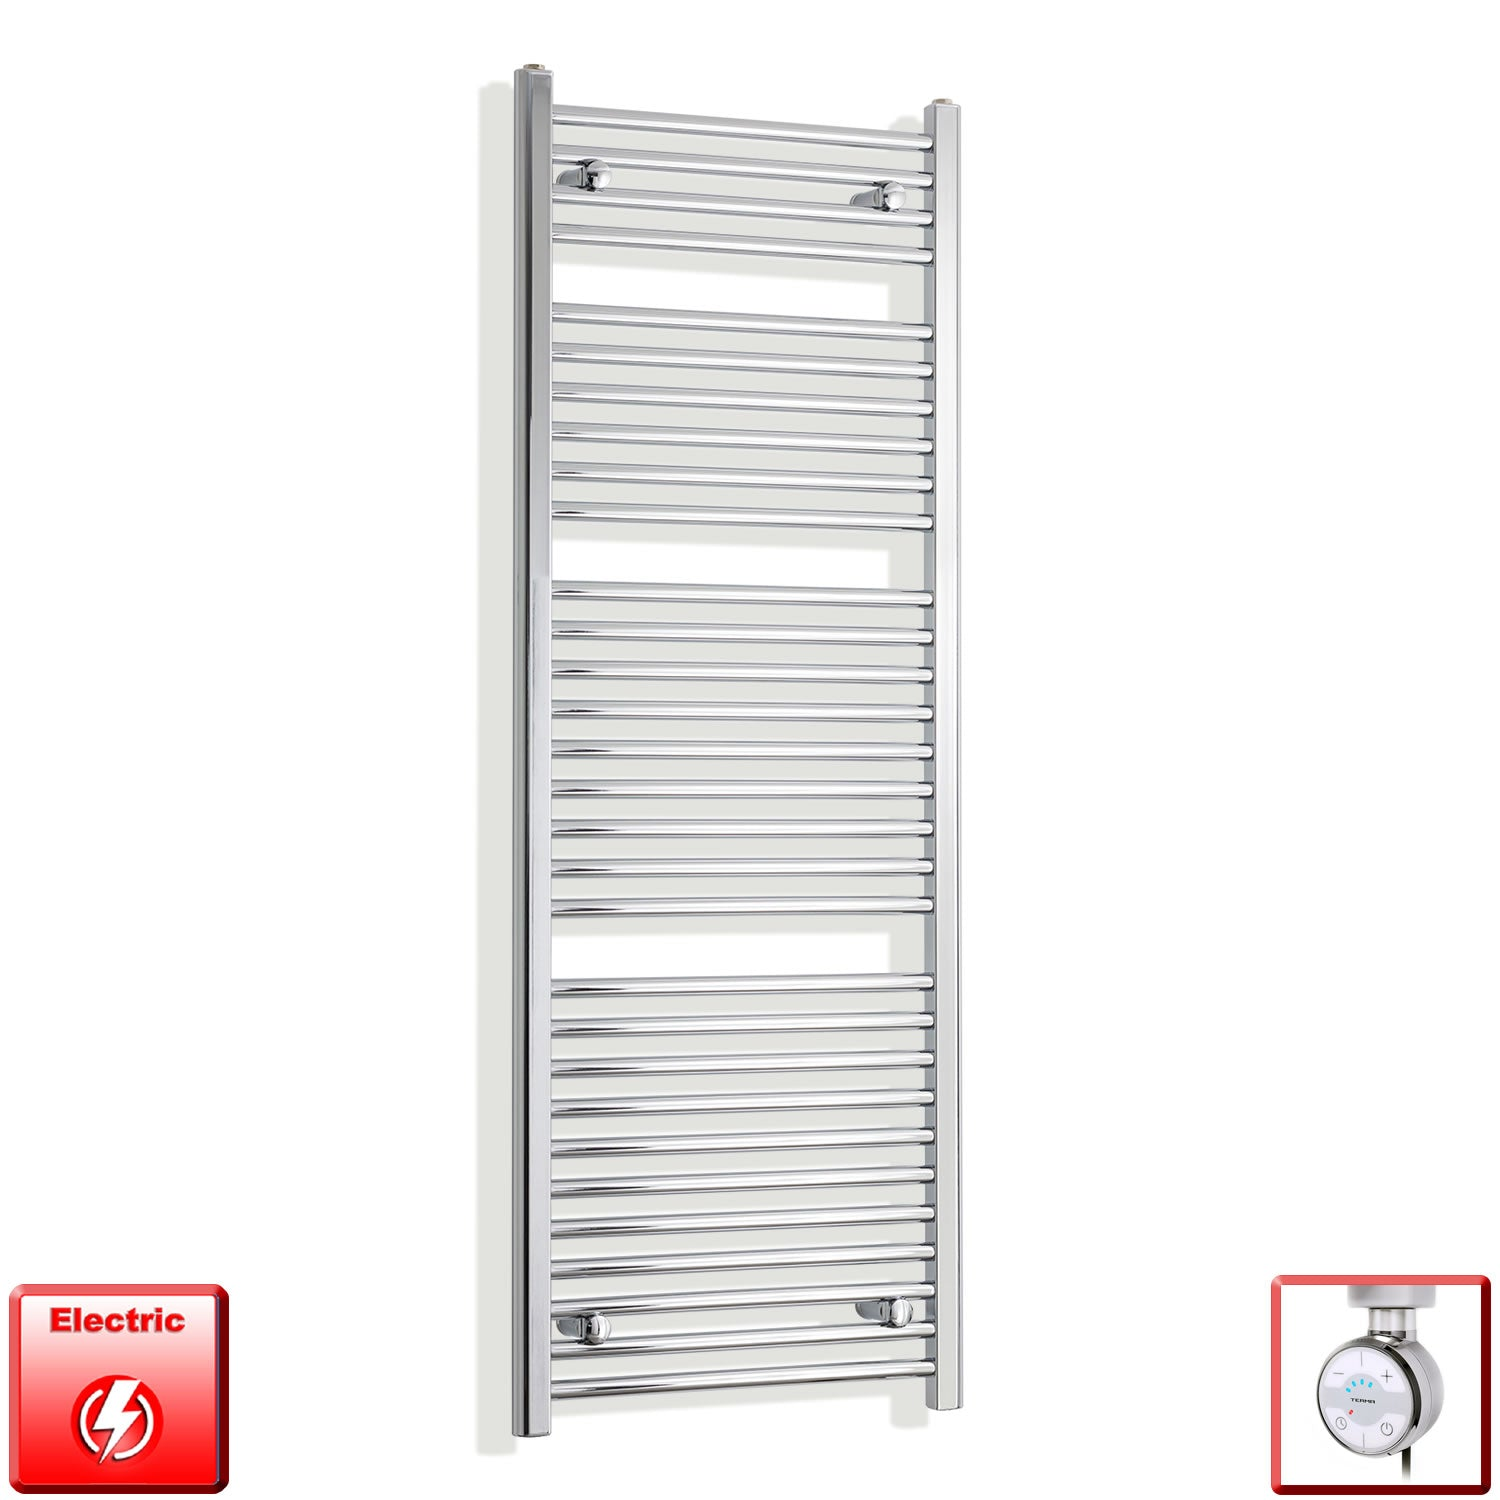 450mm Wide 1500mm High Flat Or Curved Chrome Pre-Filled Electric Heated Towel Rail Radiator HTR,MOA Thermostatic Element / Straight